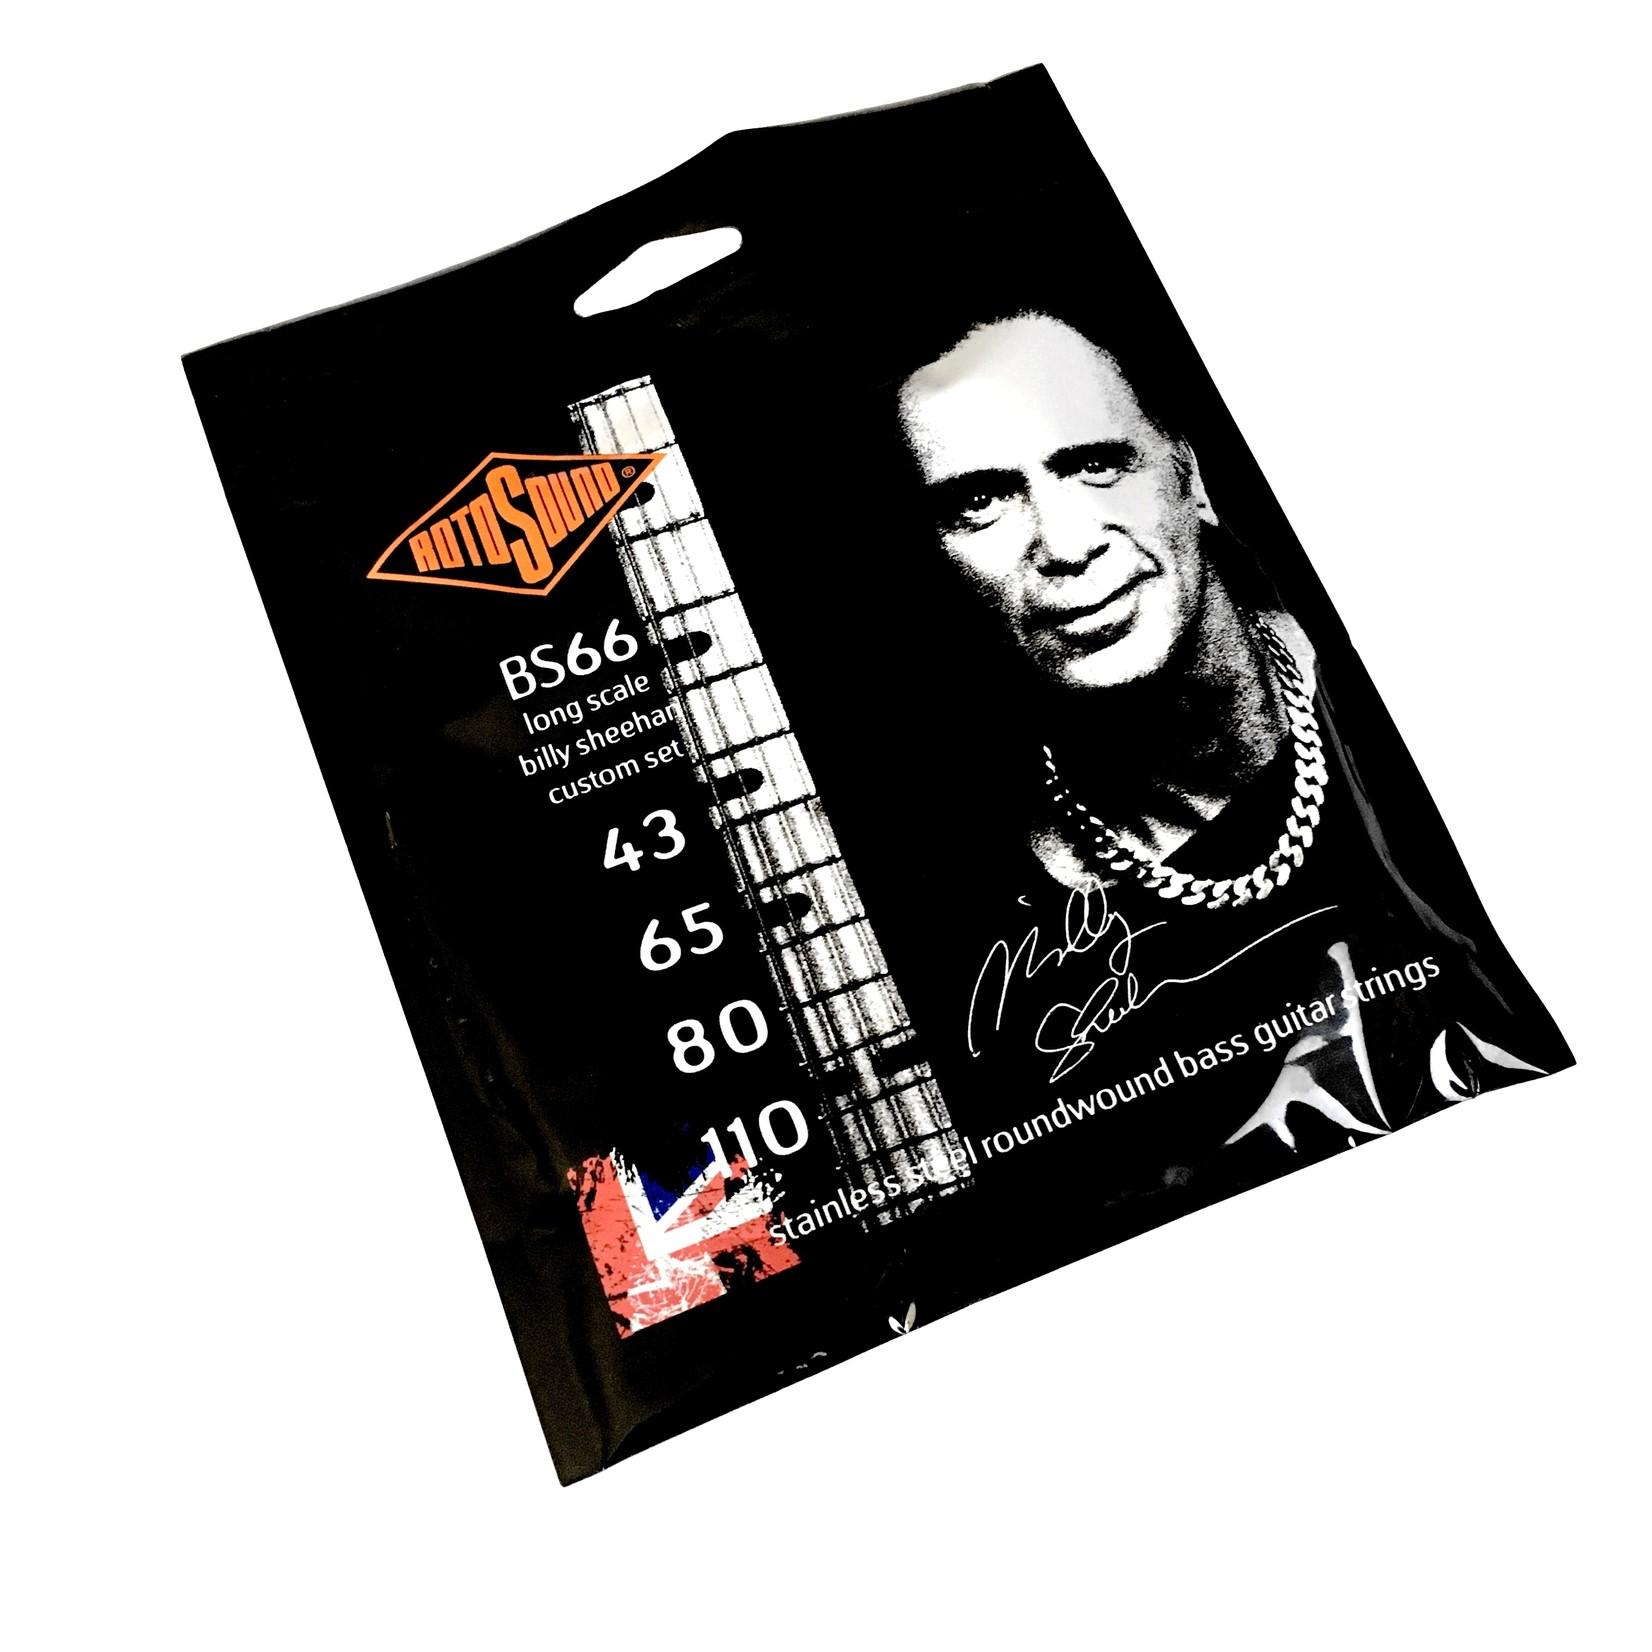 Rotosound Rotosound BS66 Billy Sheehan Custom Bass Strings, Long Scale, Stainless Steel Roundwound